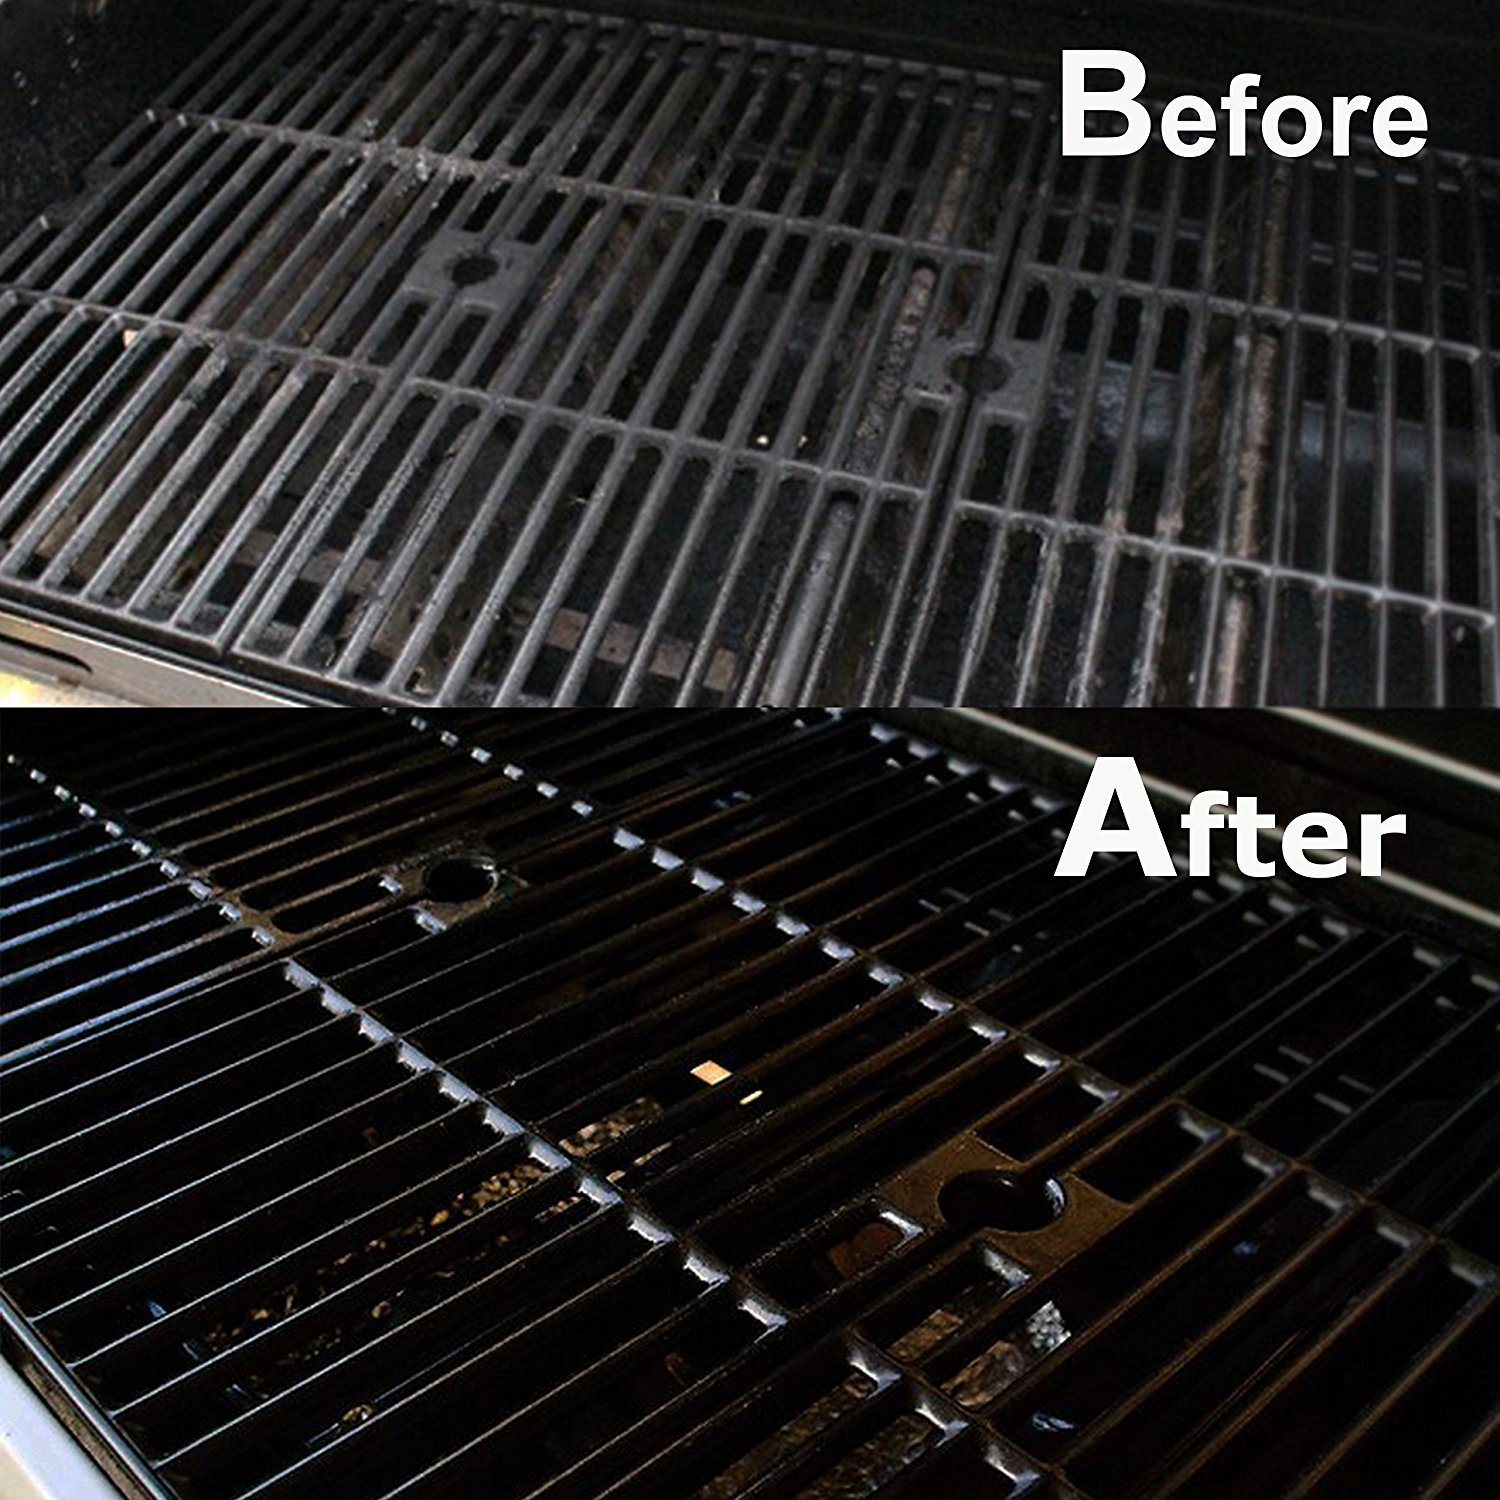 Grill Brush Bristle Free - Grill Brush - 18'' Rust Proof Triple Stainless Steel BBQ Grill Cleaner for Steel, Porcelain, Iron,Ceramic Grates by Alago (Image #6)